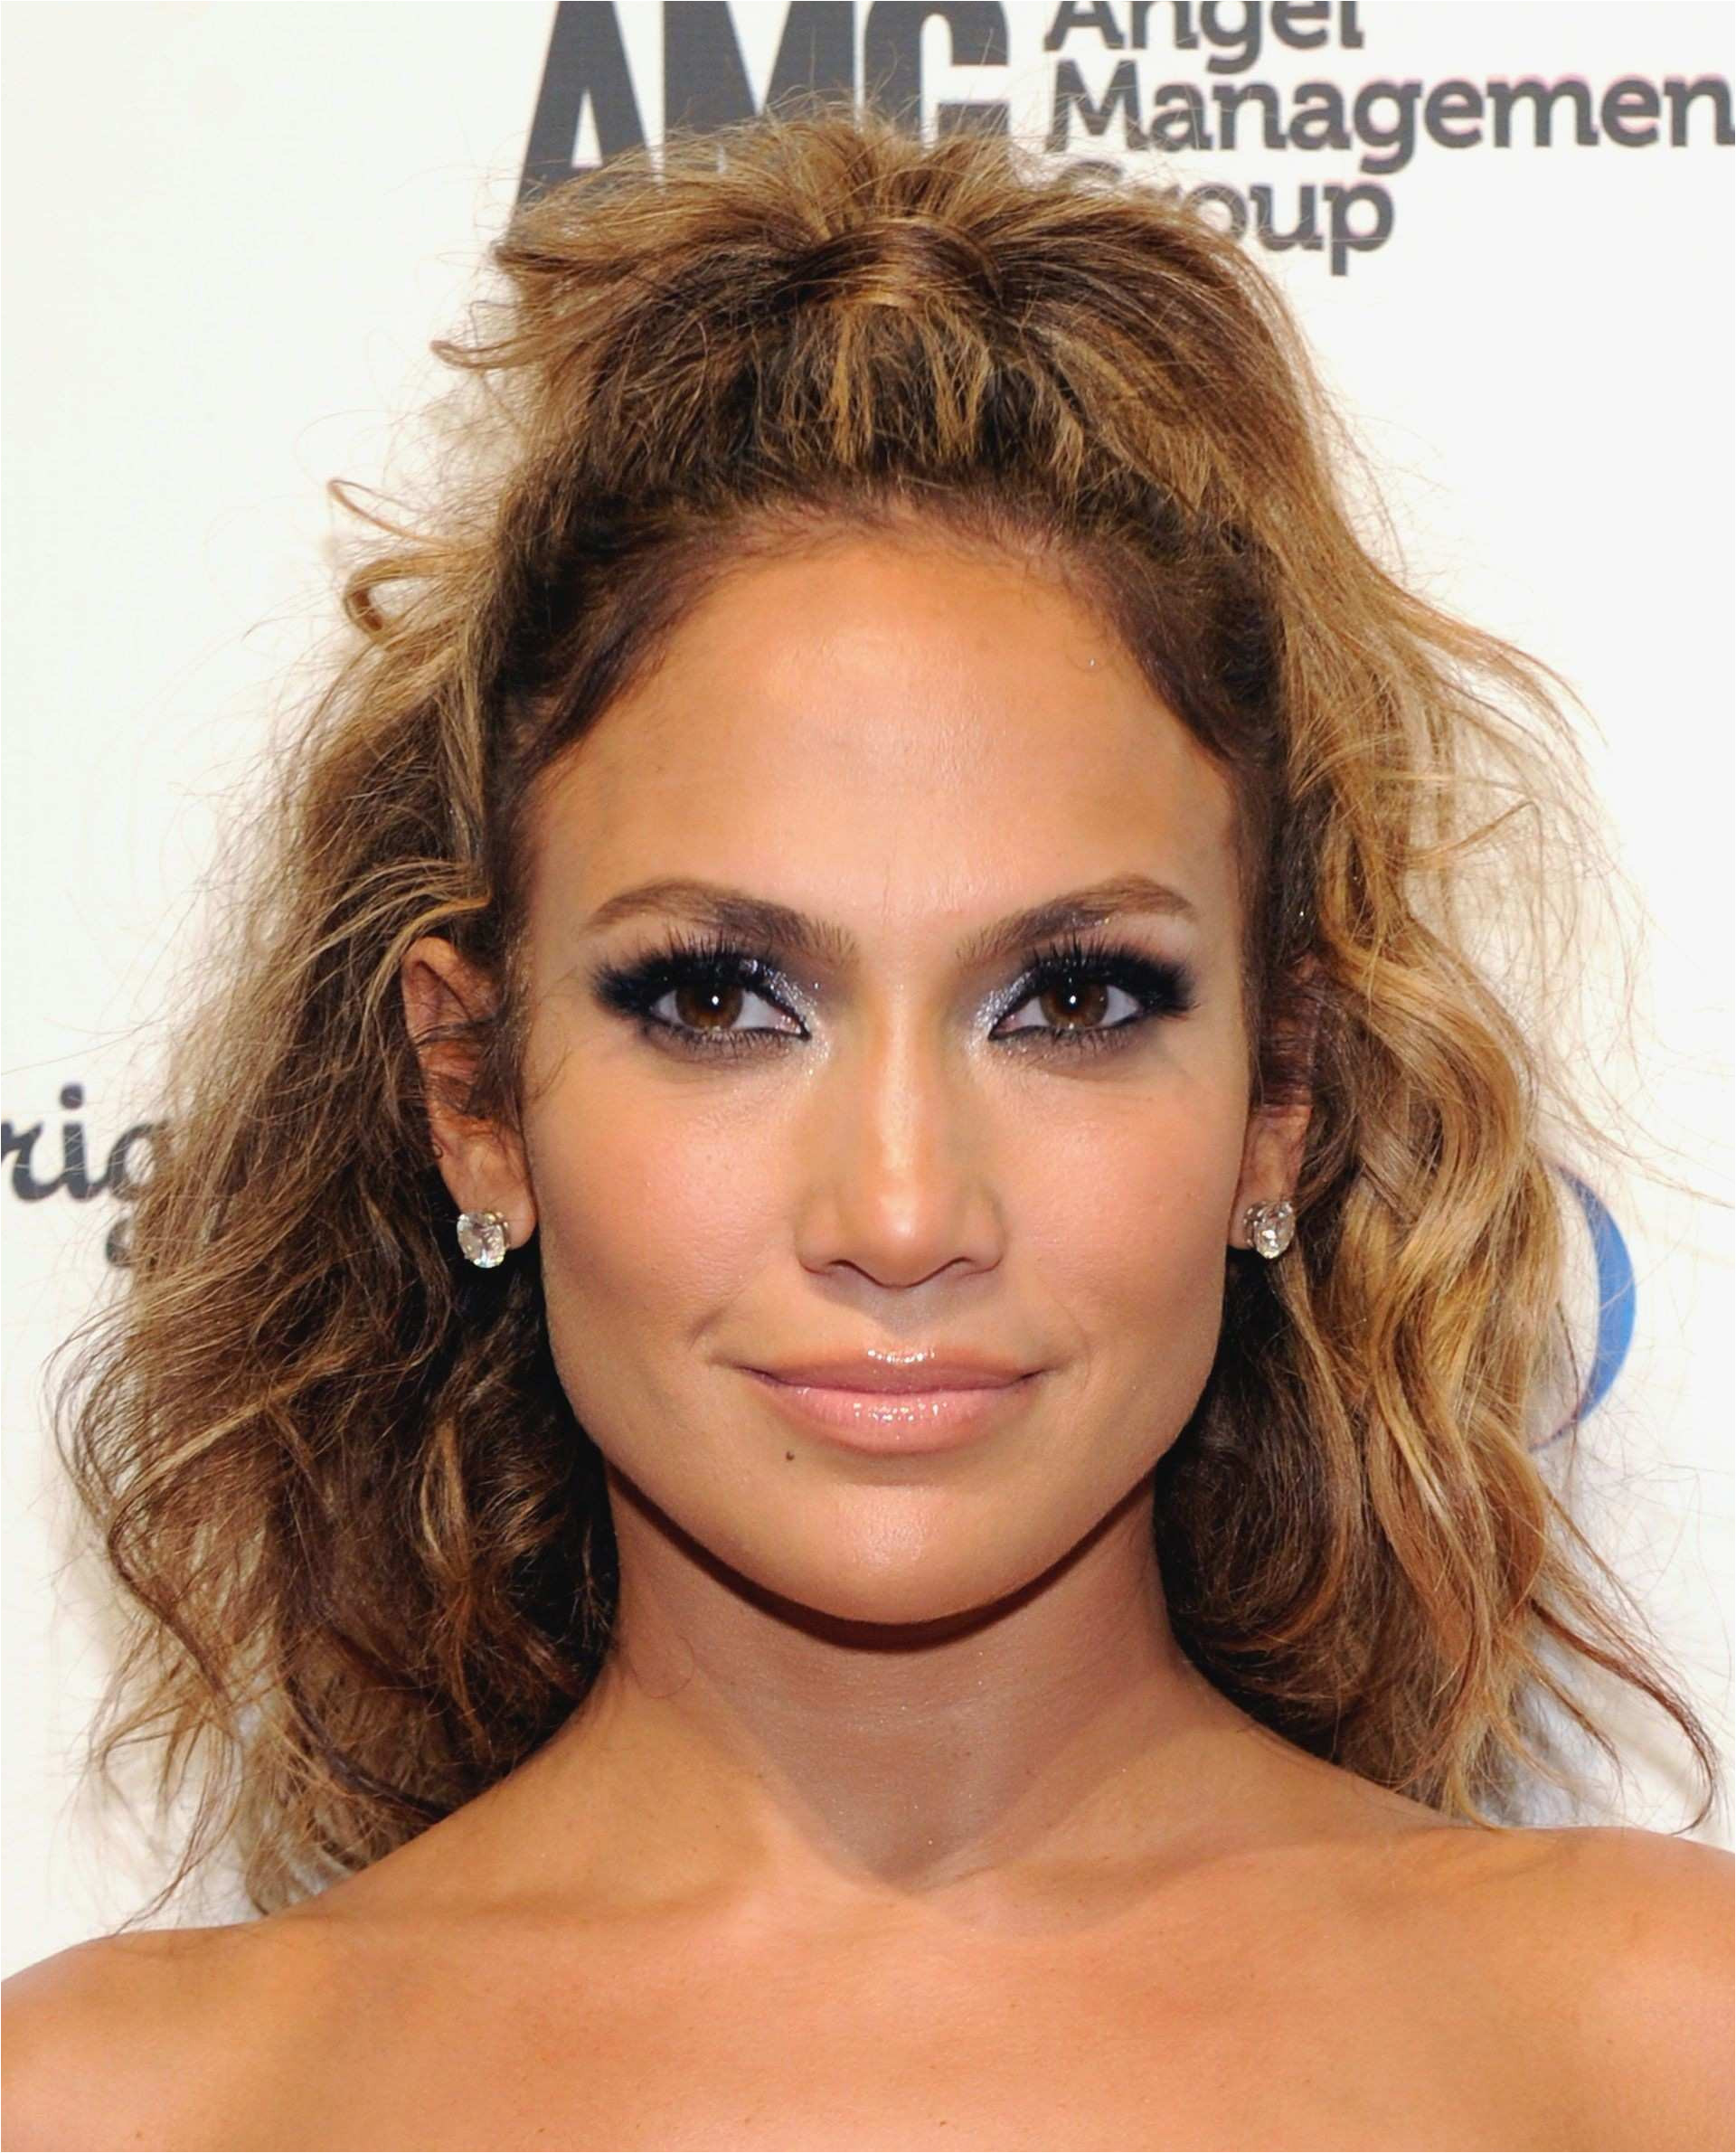 Hairstyles for Big forehead Girls Beautiful Inspirational Hairstyles for Thin Curly Hair – Adriculous Hairstyles